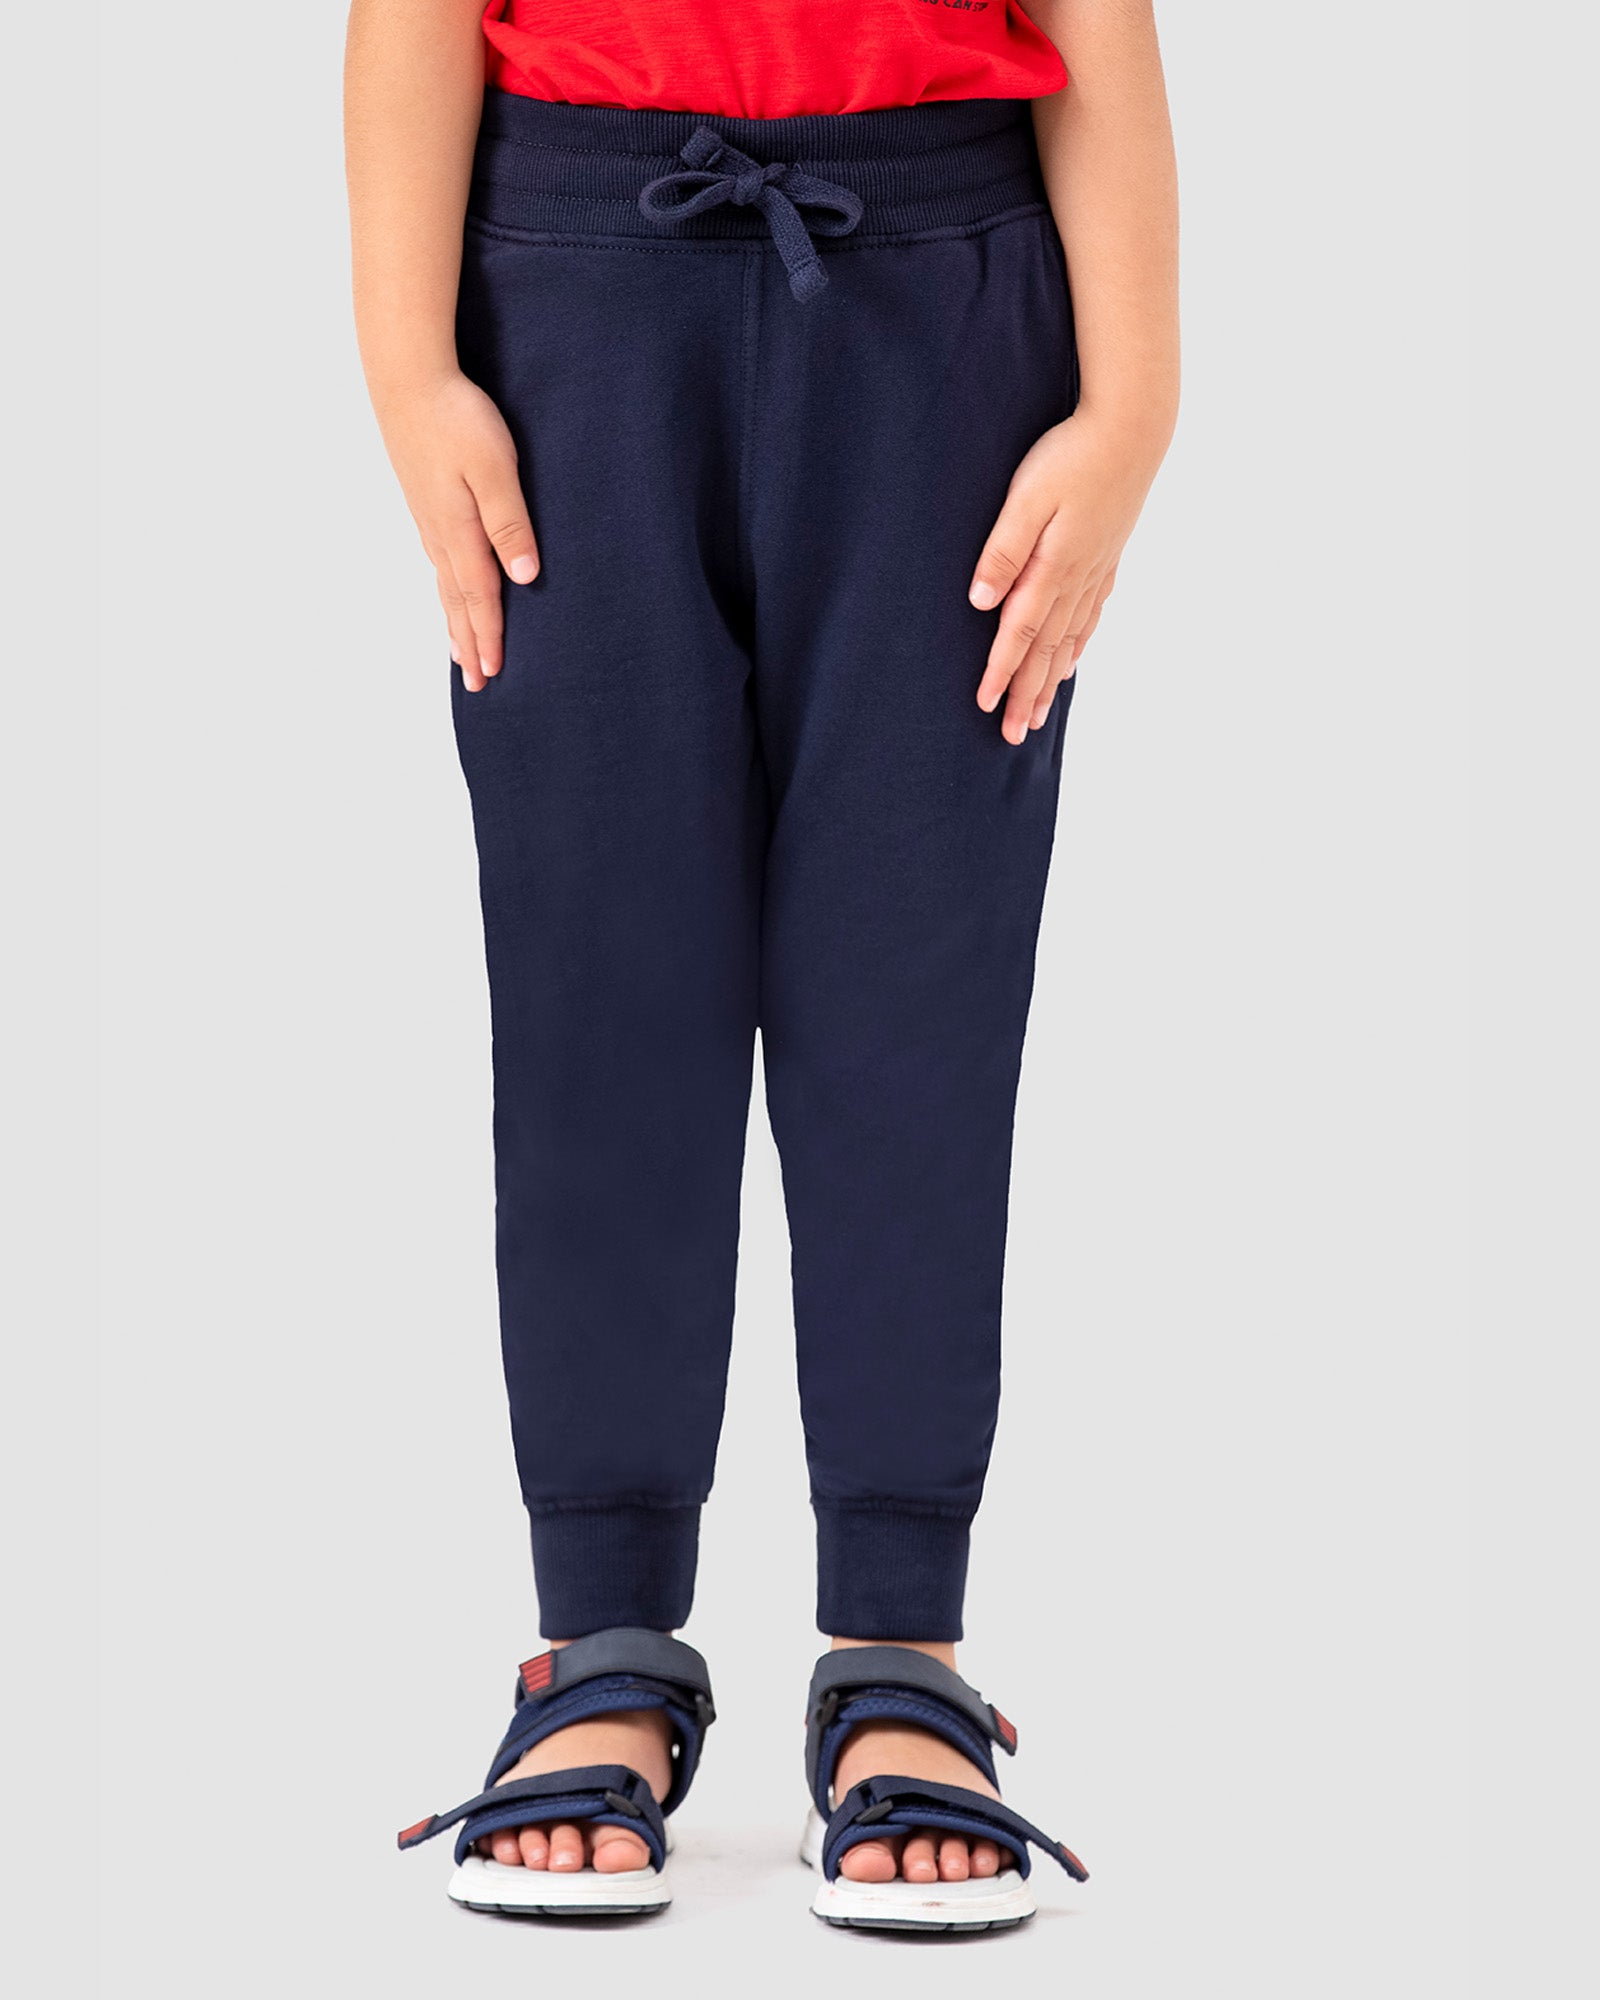 Jogger Trouser with Tie Knot